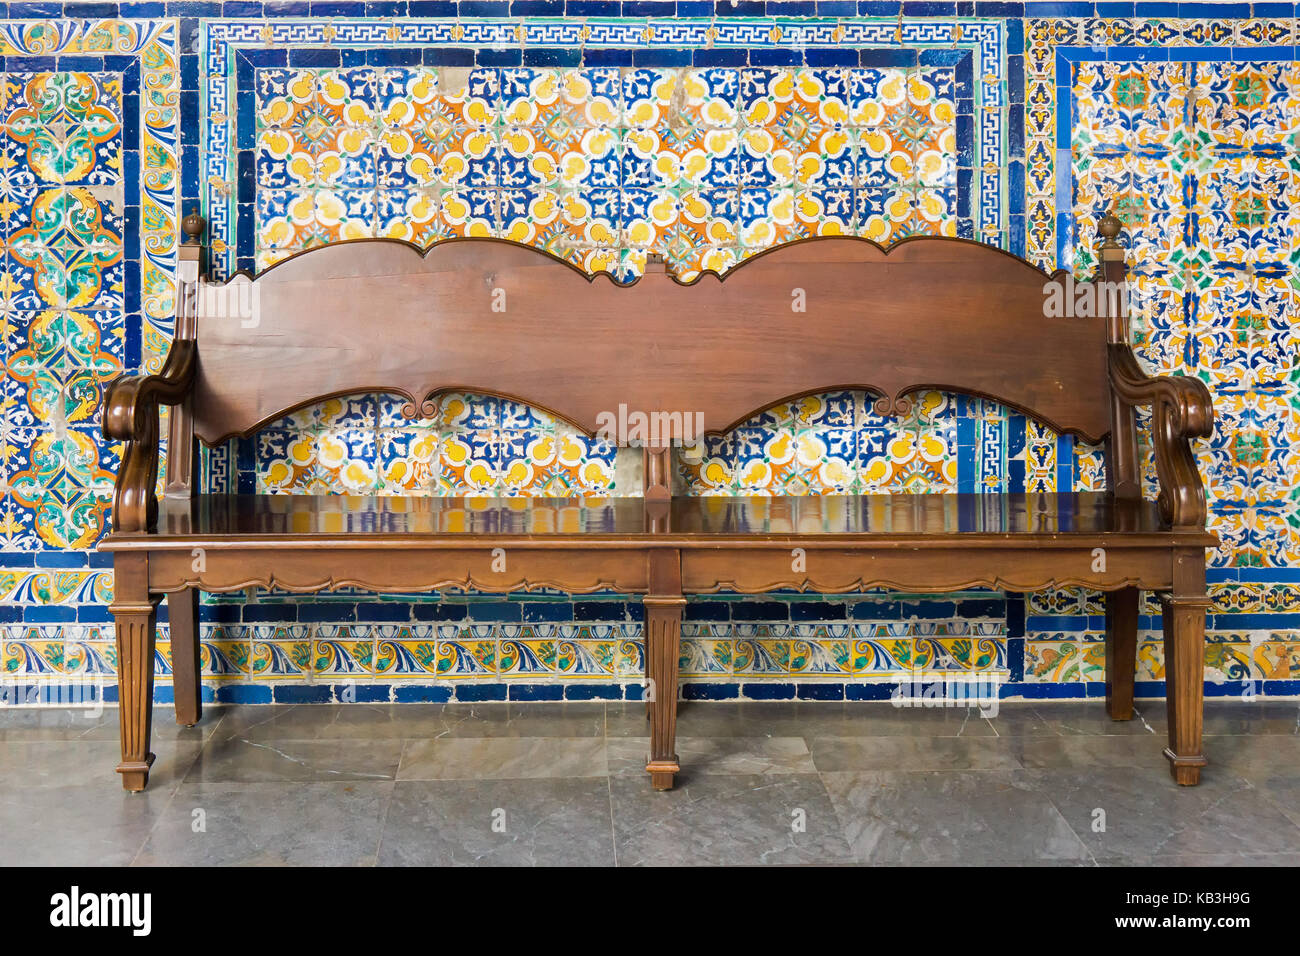 Tremendous Old Wooden Bench With A Background Of Ceramic Tiles Stock Spiritservingveterans Wood Chair Design Ideas Spiritservingveteransorg